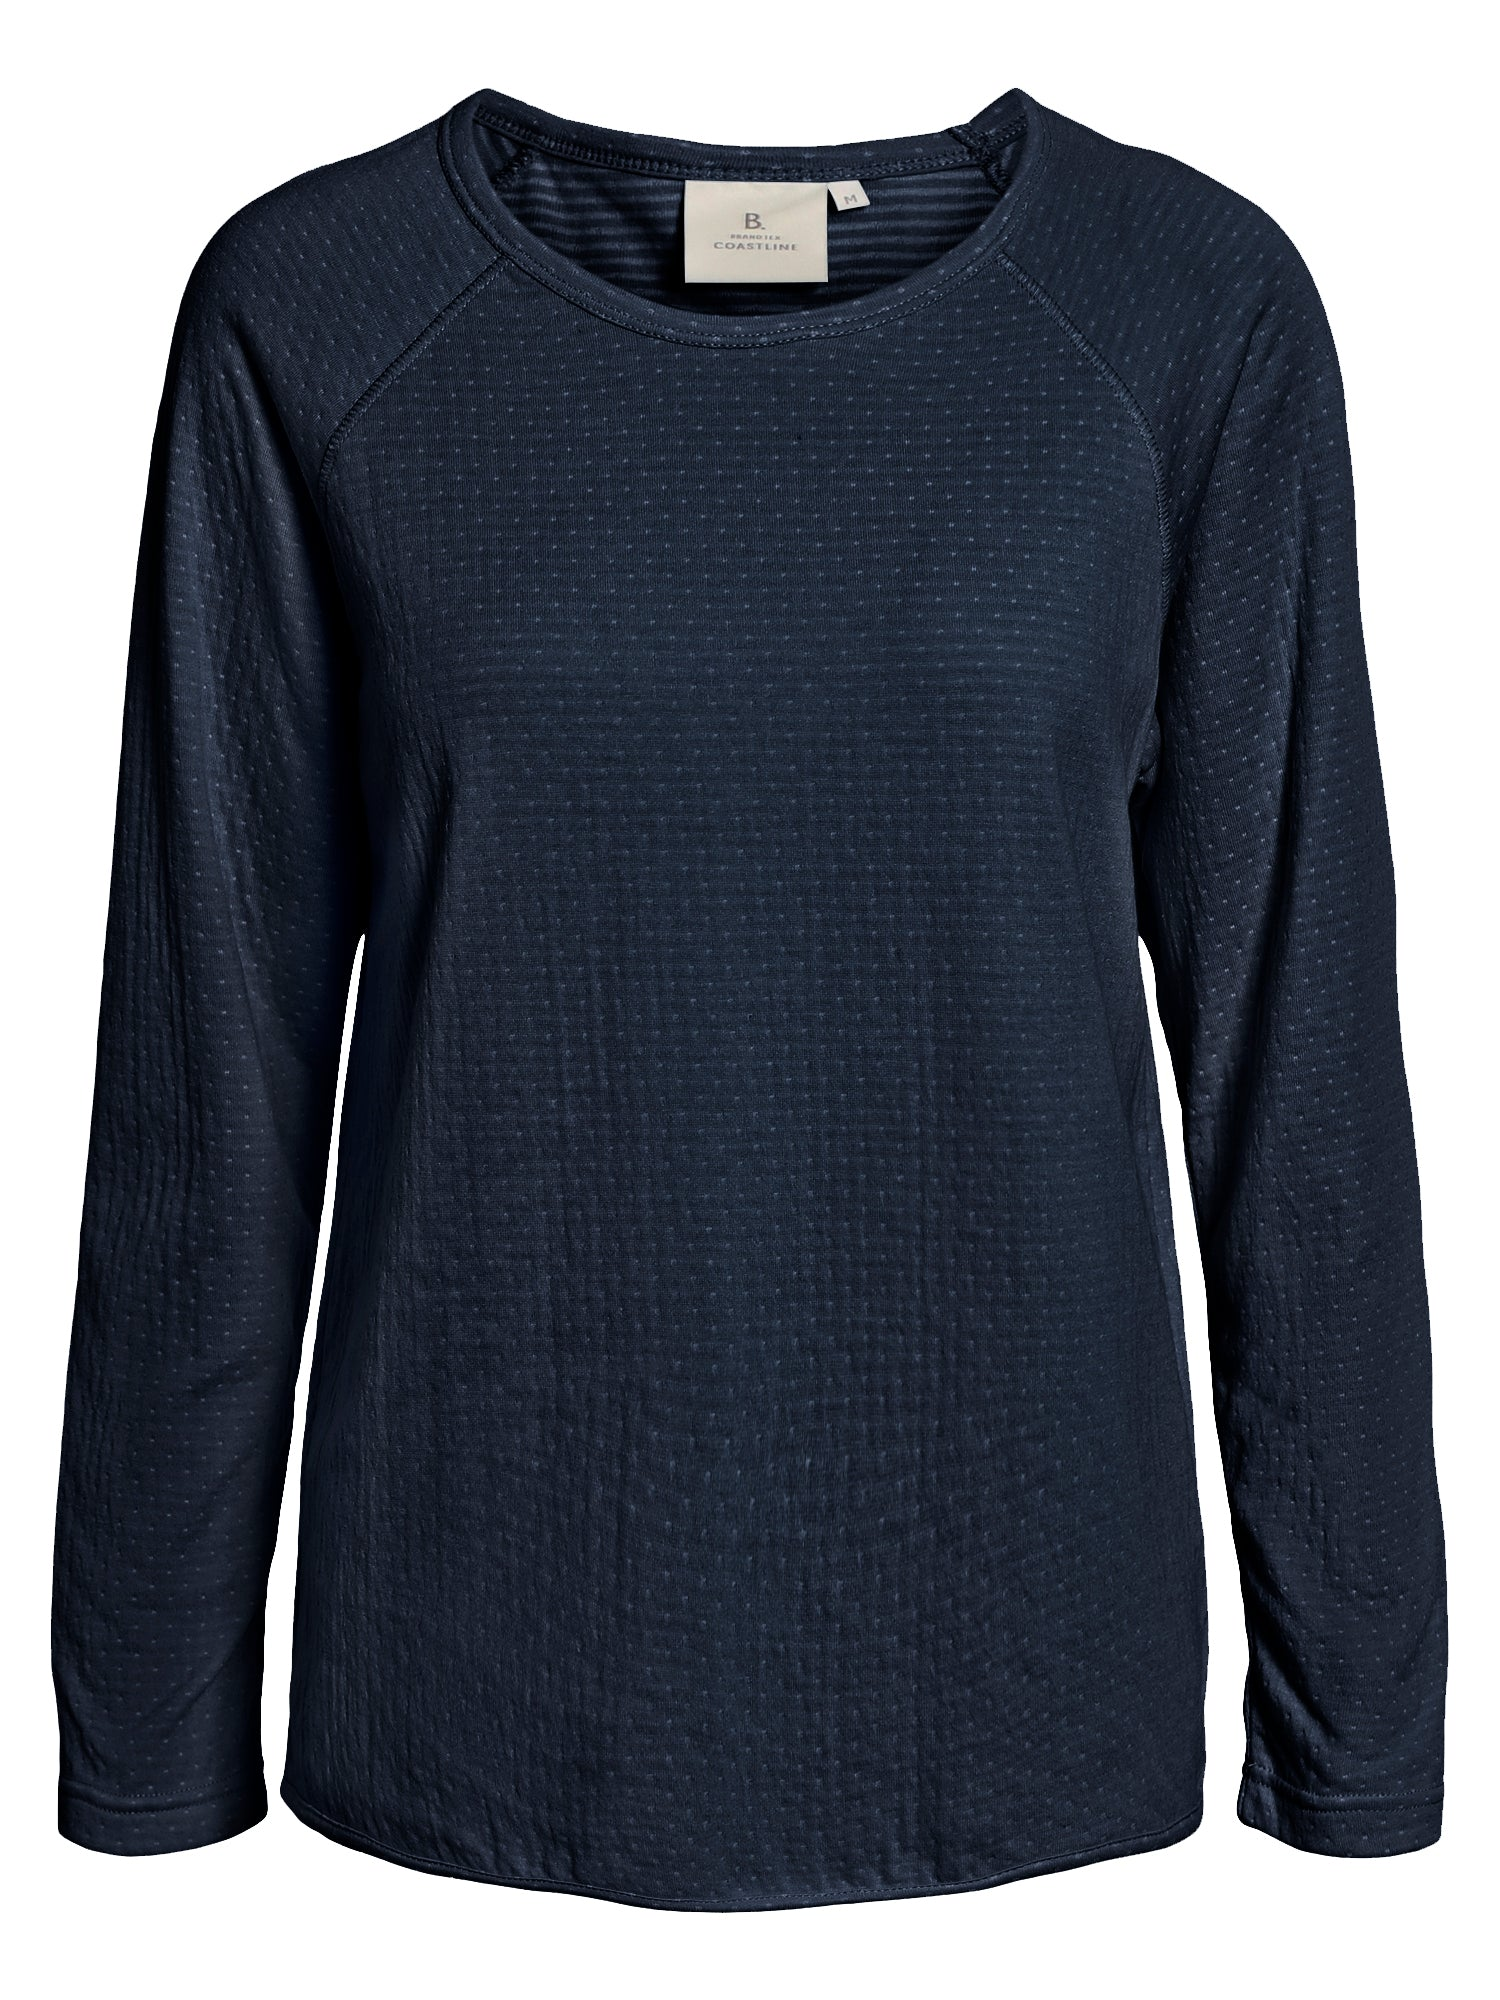 Image of   Sweatshirt - Midnight Blue